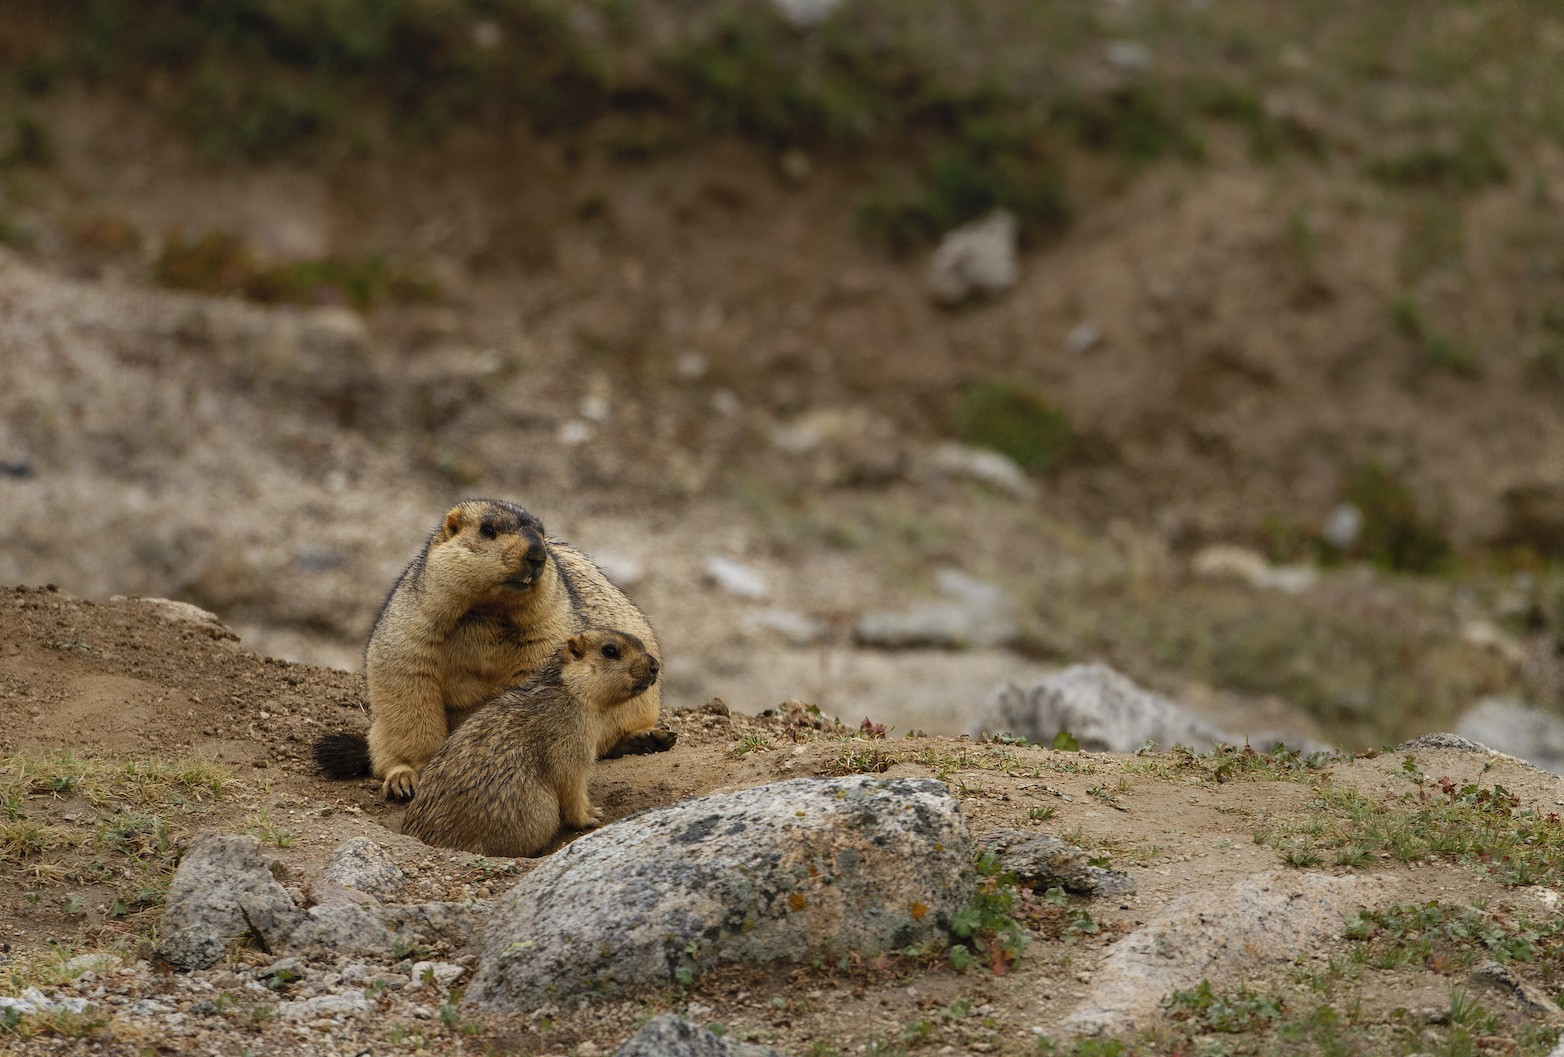 "Young Himalayan marmots are born around end-May or June, and remain underground for a few weeks. They emerge from their home burrows around end-July, but stay close to their mothers for the first year. Males are around at this time, but do not actively participative in parenting. Marmots live in colonies and have an excellent lookout system to prevent their kin and friends from becoming food for predators such as dogs, foxes, snow leopards, and raptors. ""Marmots have a distinctive alarm call, and will sometimes continue to call for half an hour after they see a predator,"" says Rajamani. Photo: Shivang Mehta"